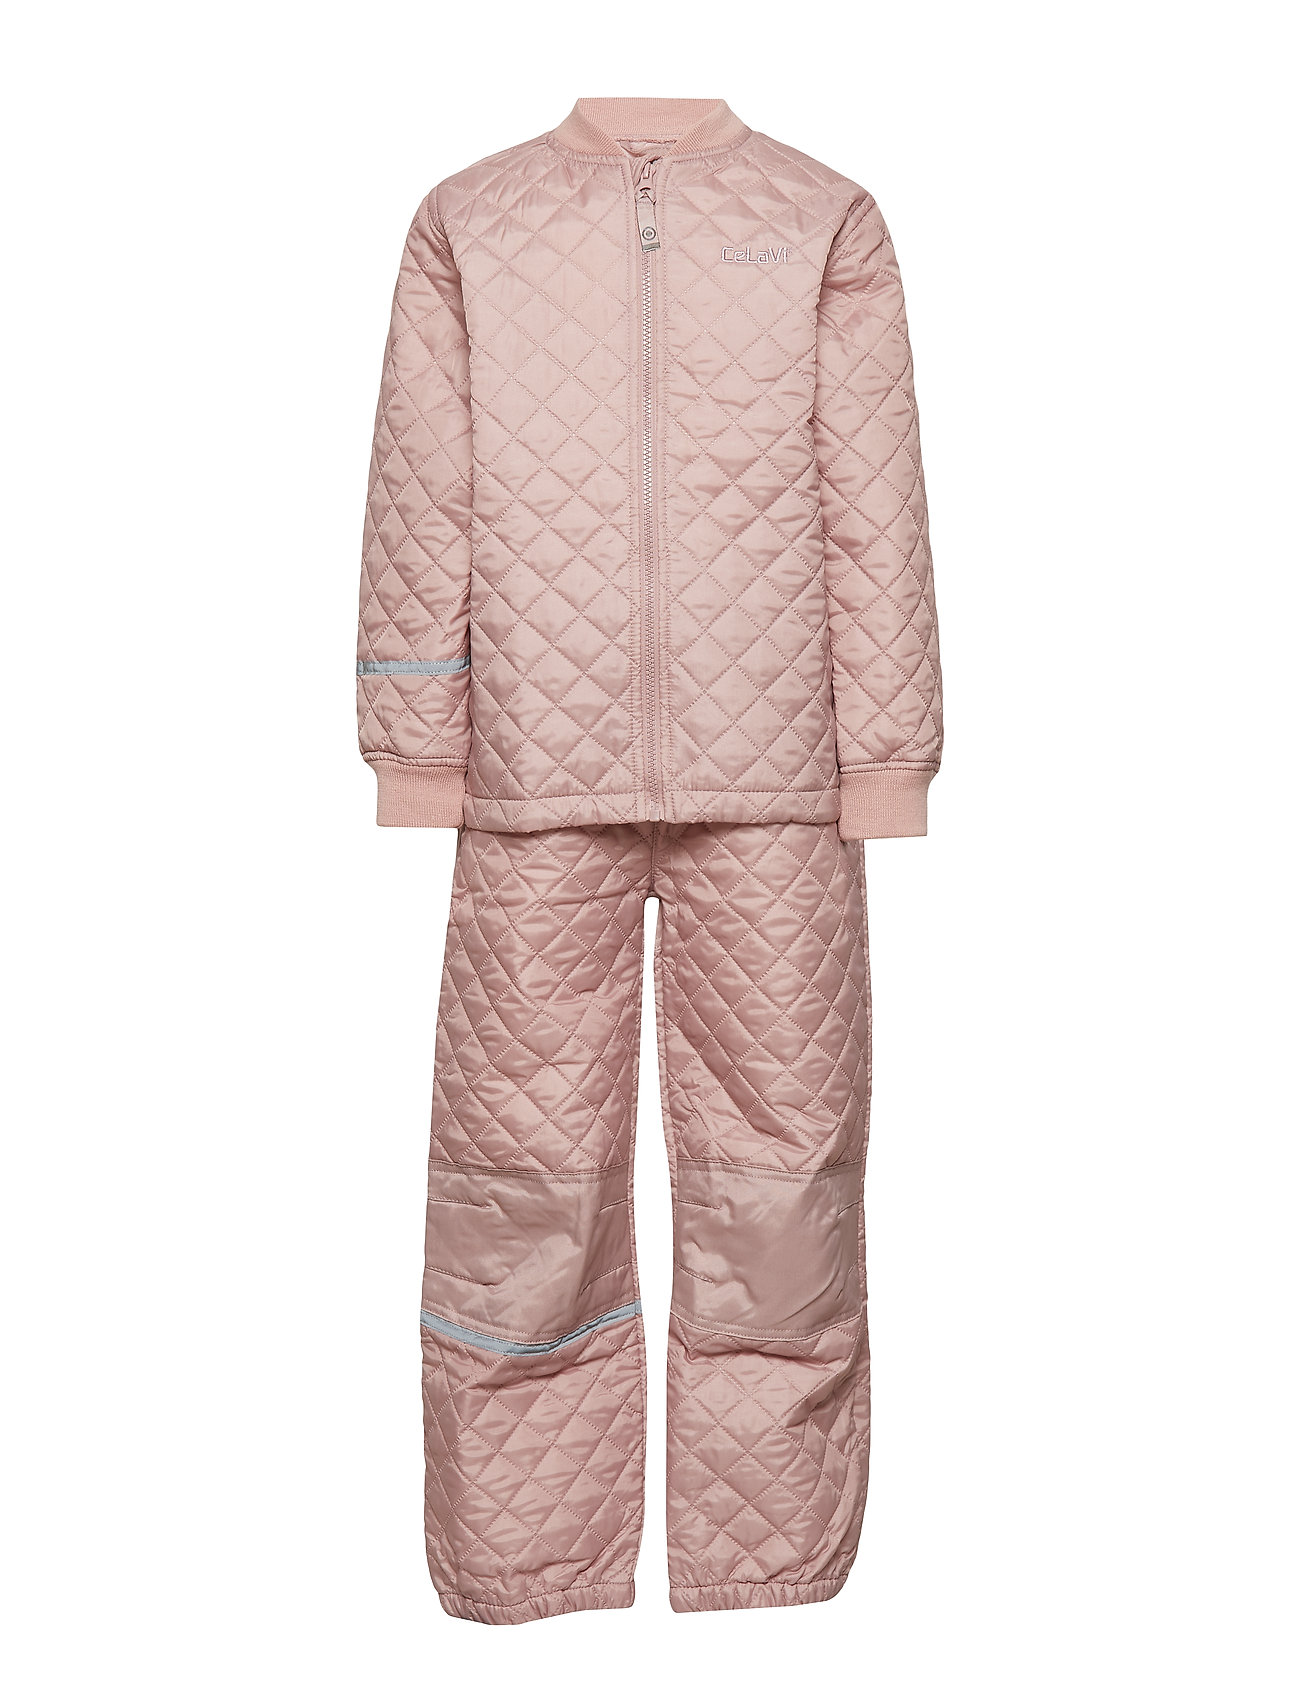 Image of Thermal Set -Solid Outerwear Thermo Outerwear Lyserød CeLaVi (2834562863)